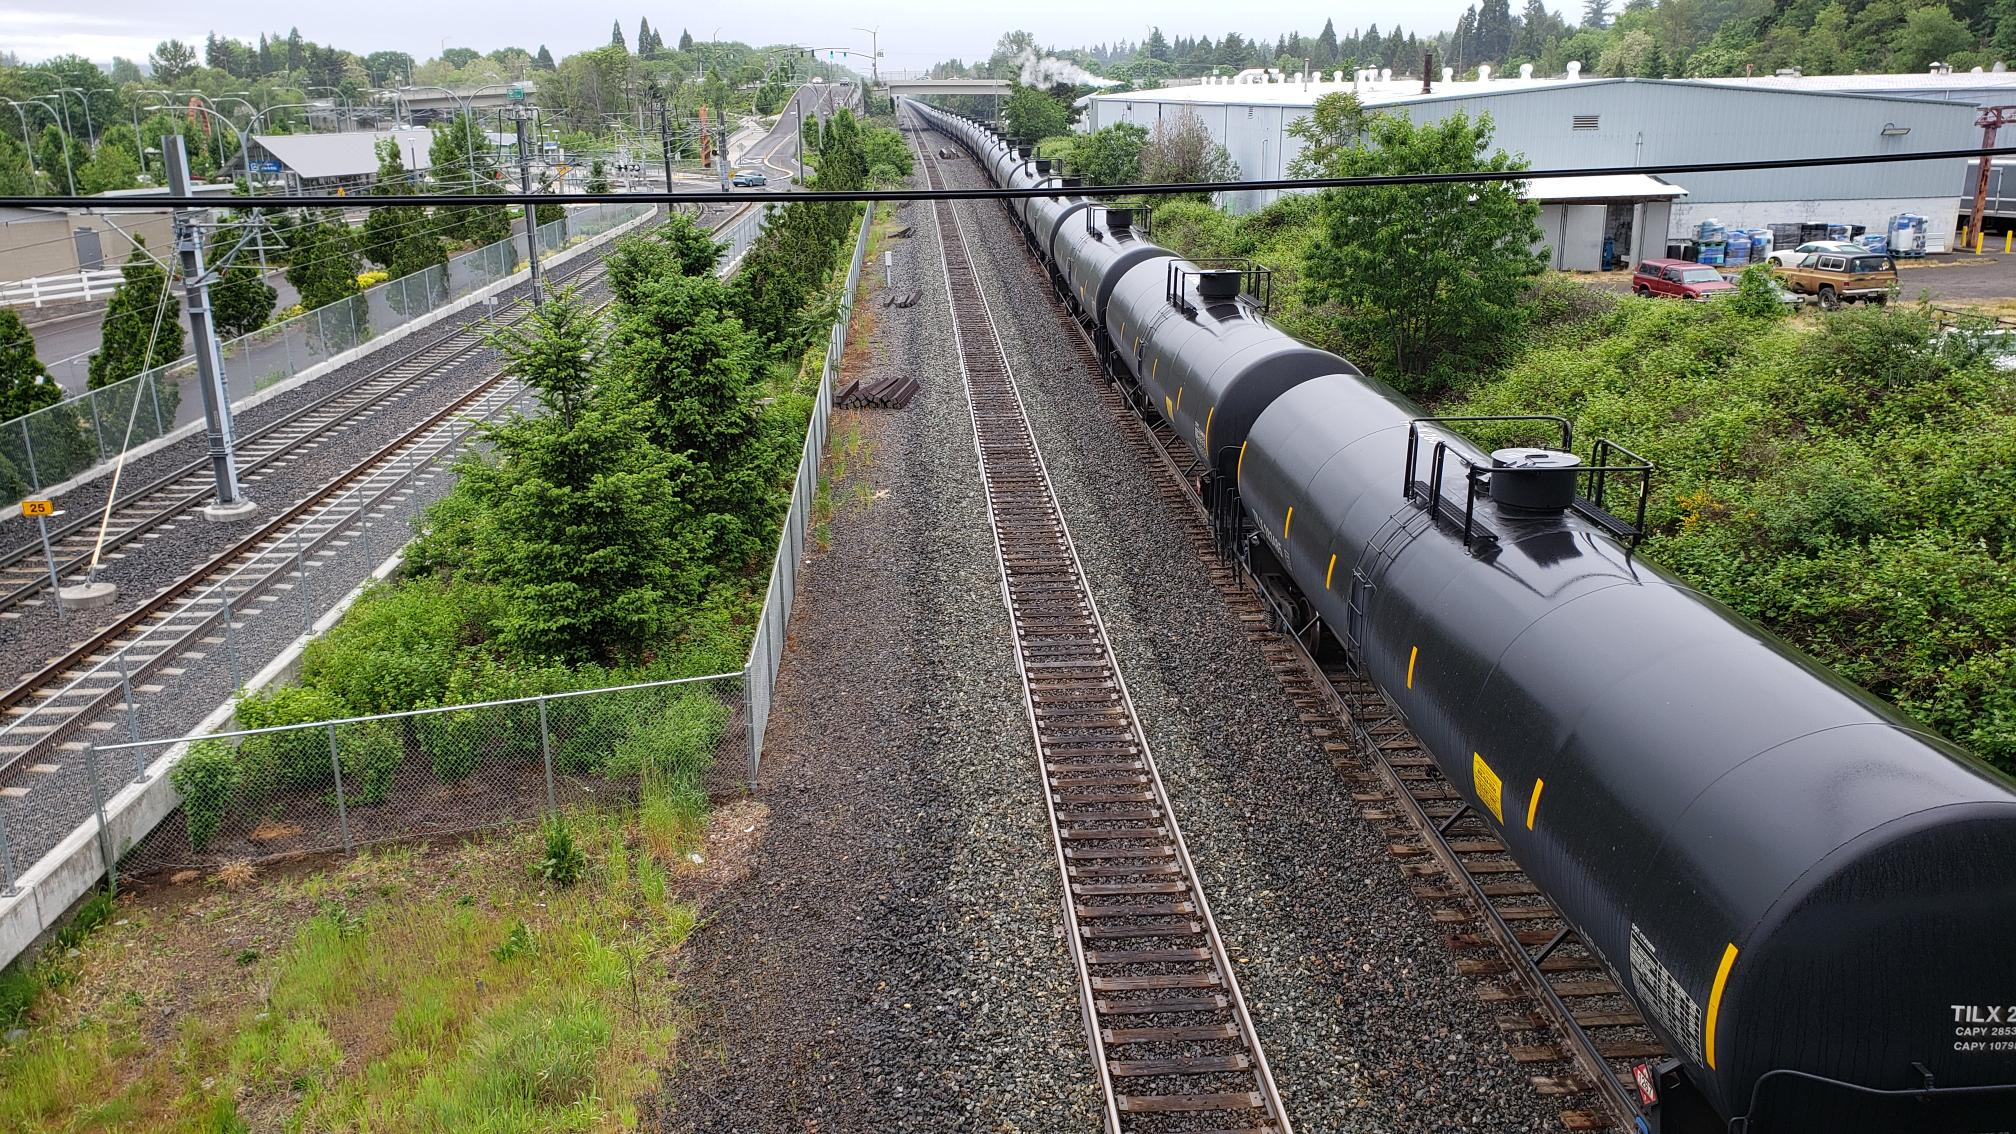 Oil_trains_johnson_creek